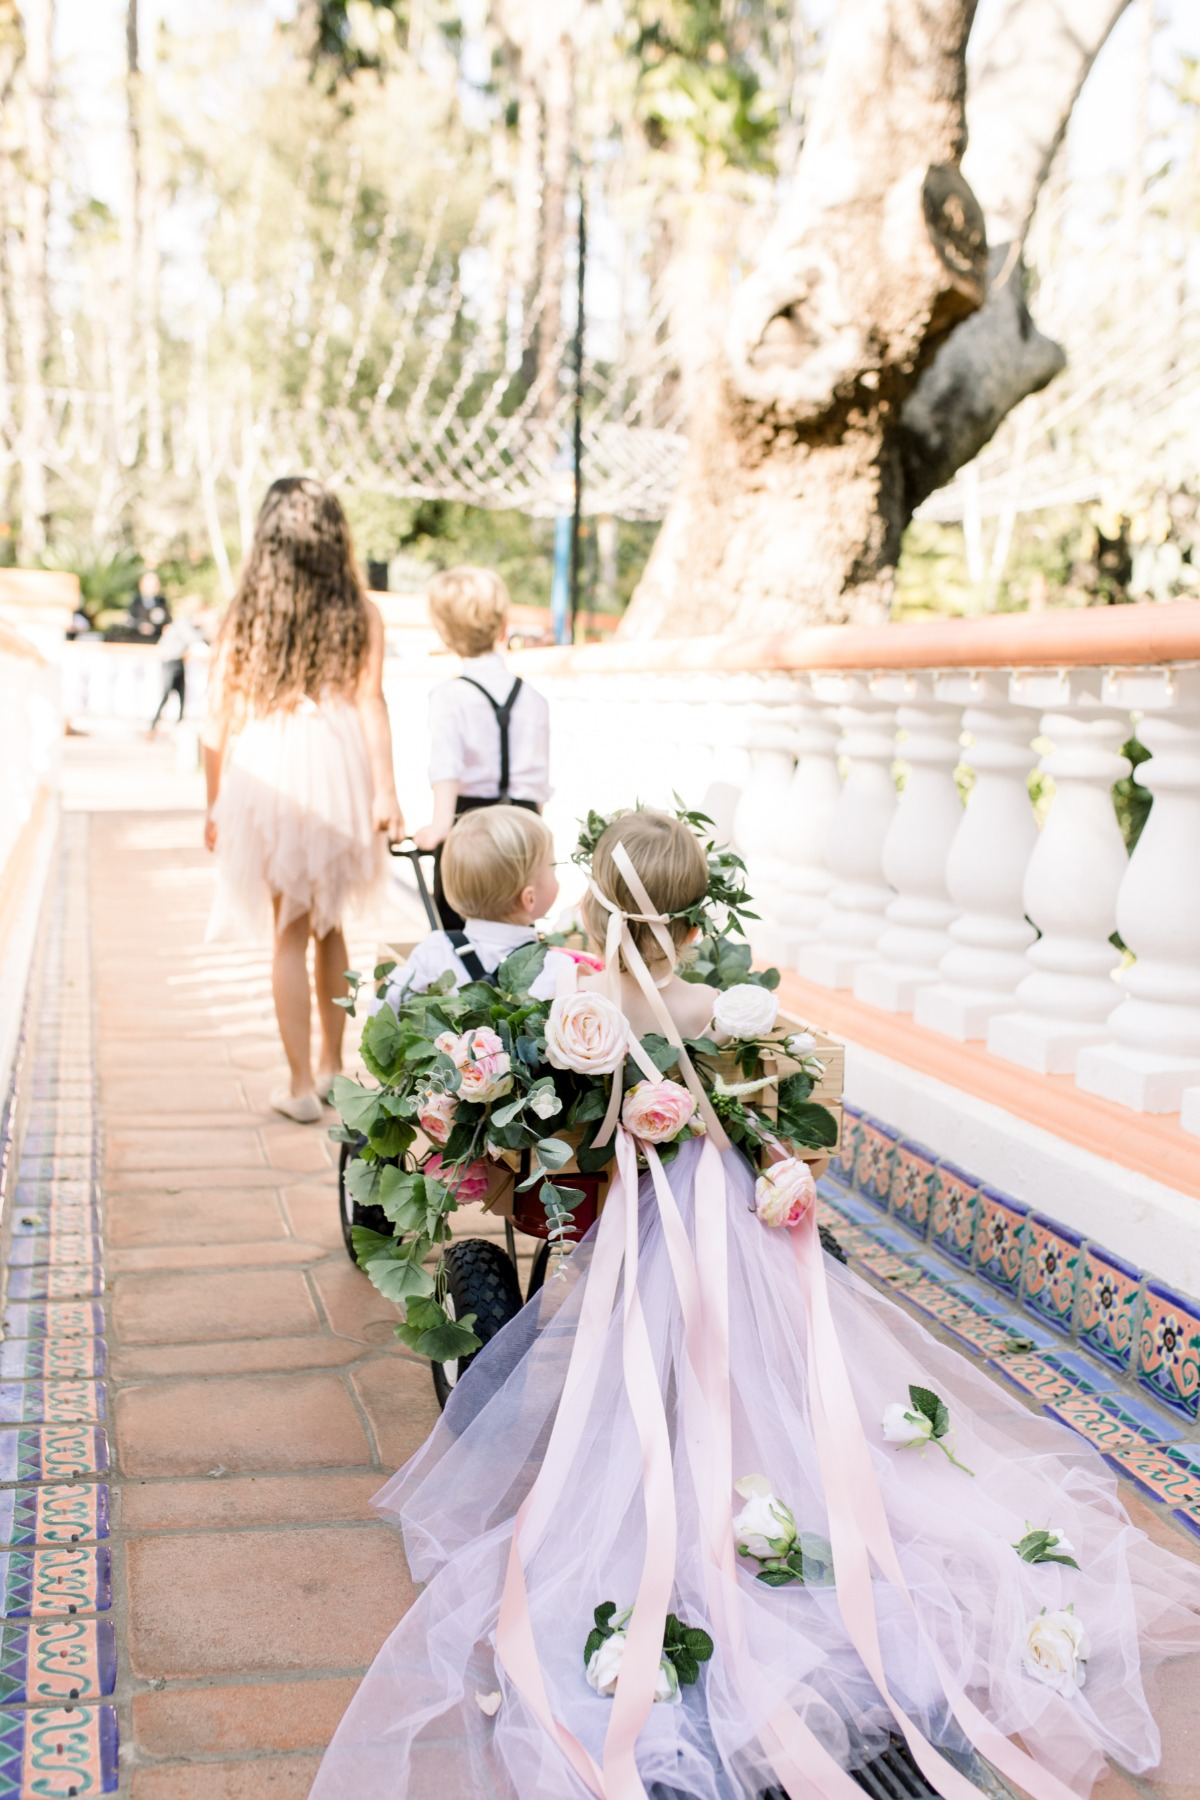 A Blossoming Blush Wedding in Southern California